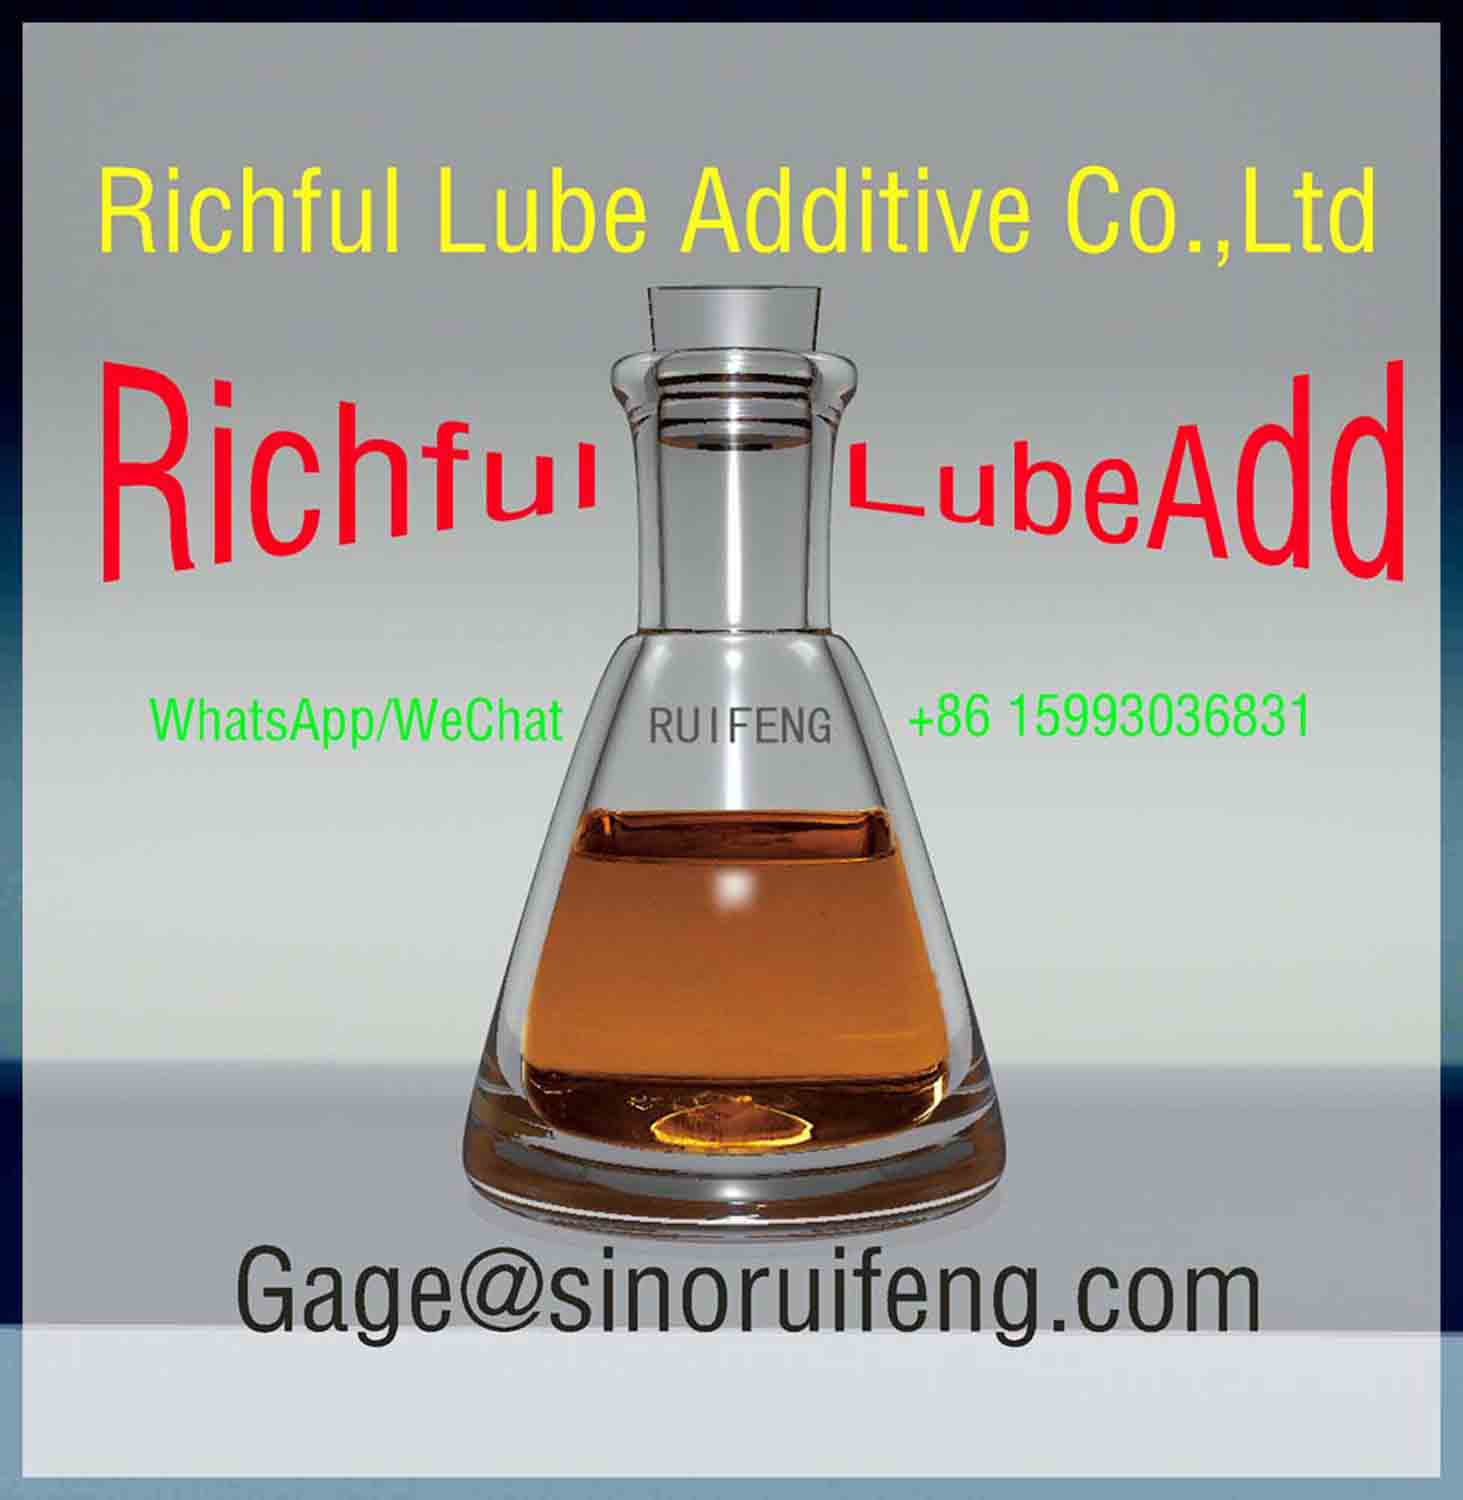 Gasoline Engine Oil Package API SG Richful Lubricant Additives RF6141